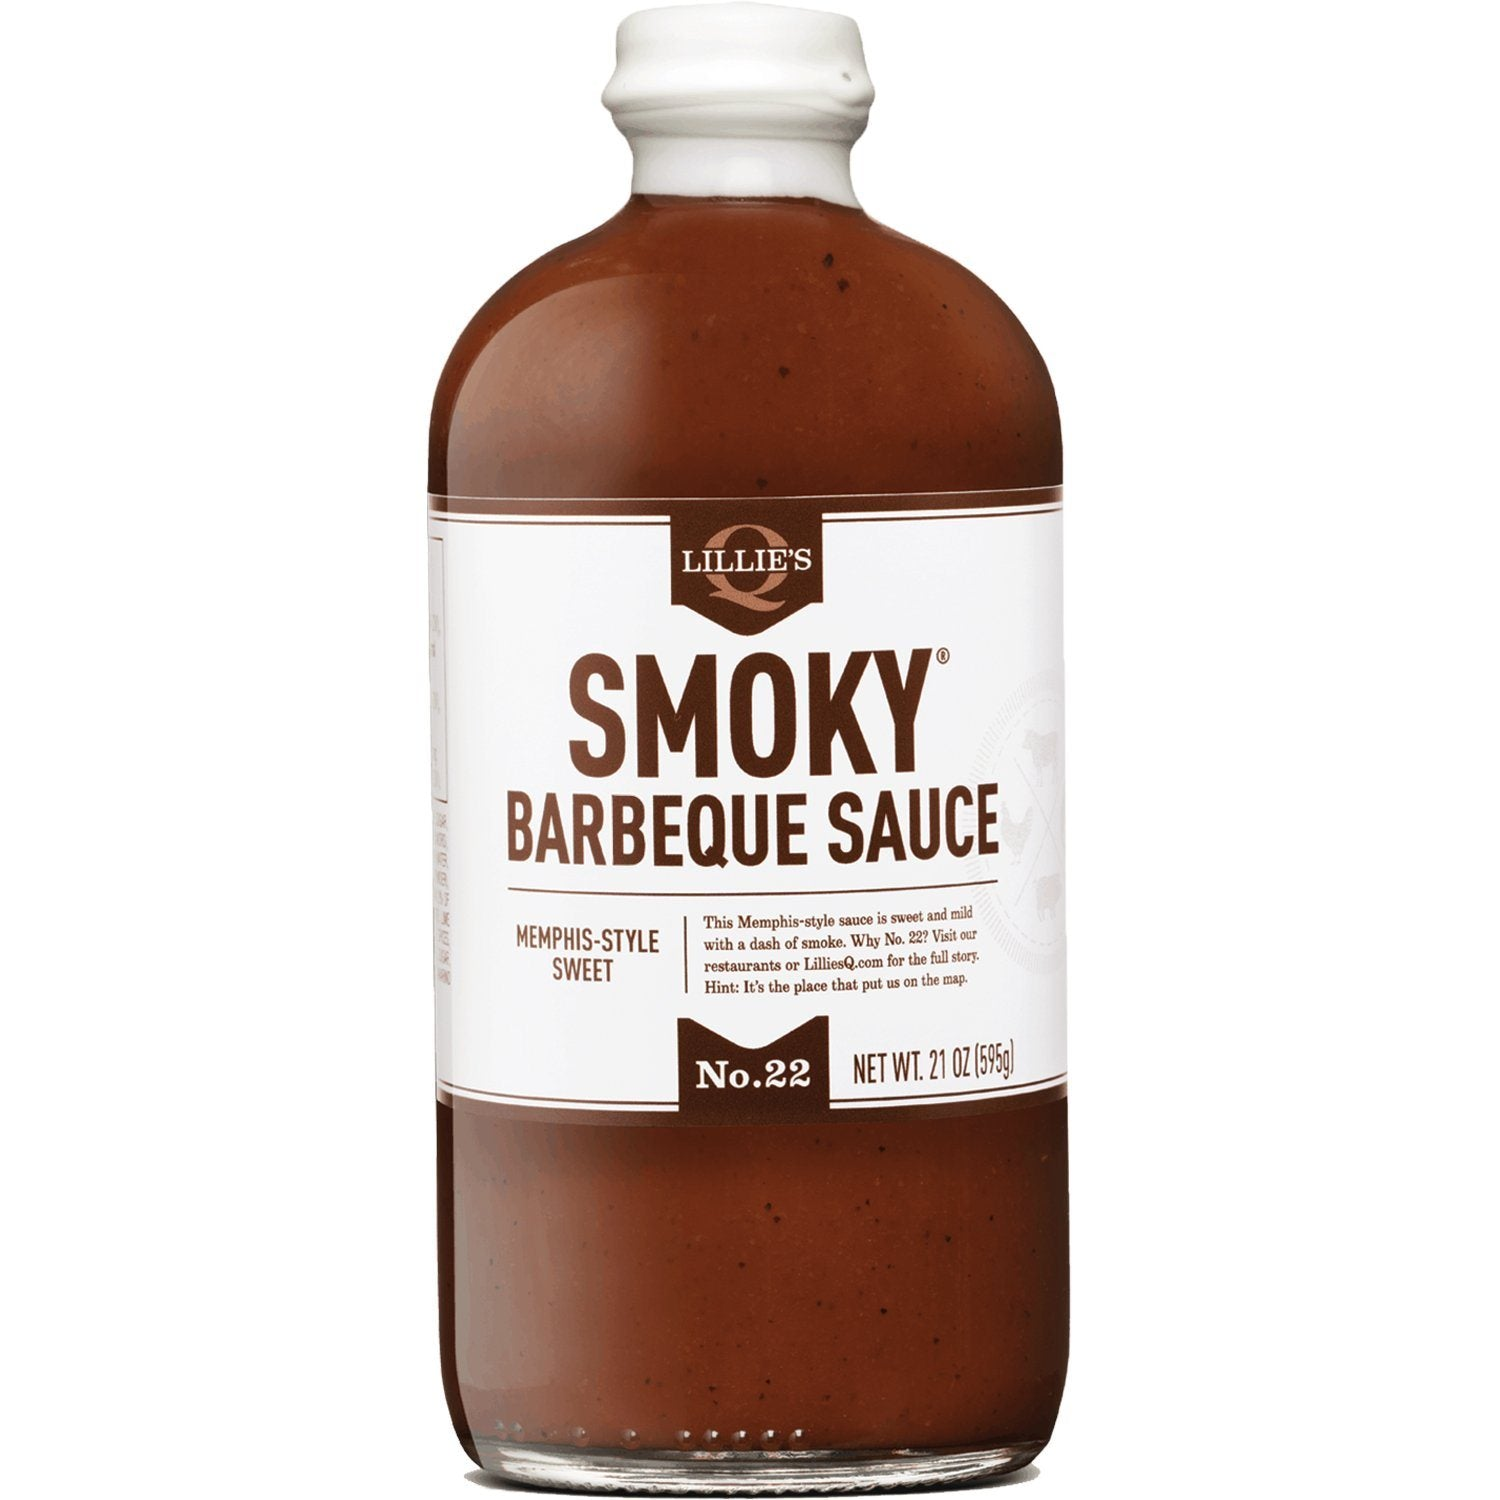 Lillie's Q Southern Barbeque Sauce Lillie's Q Smoky Memphis-style 21 Ounce